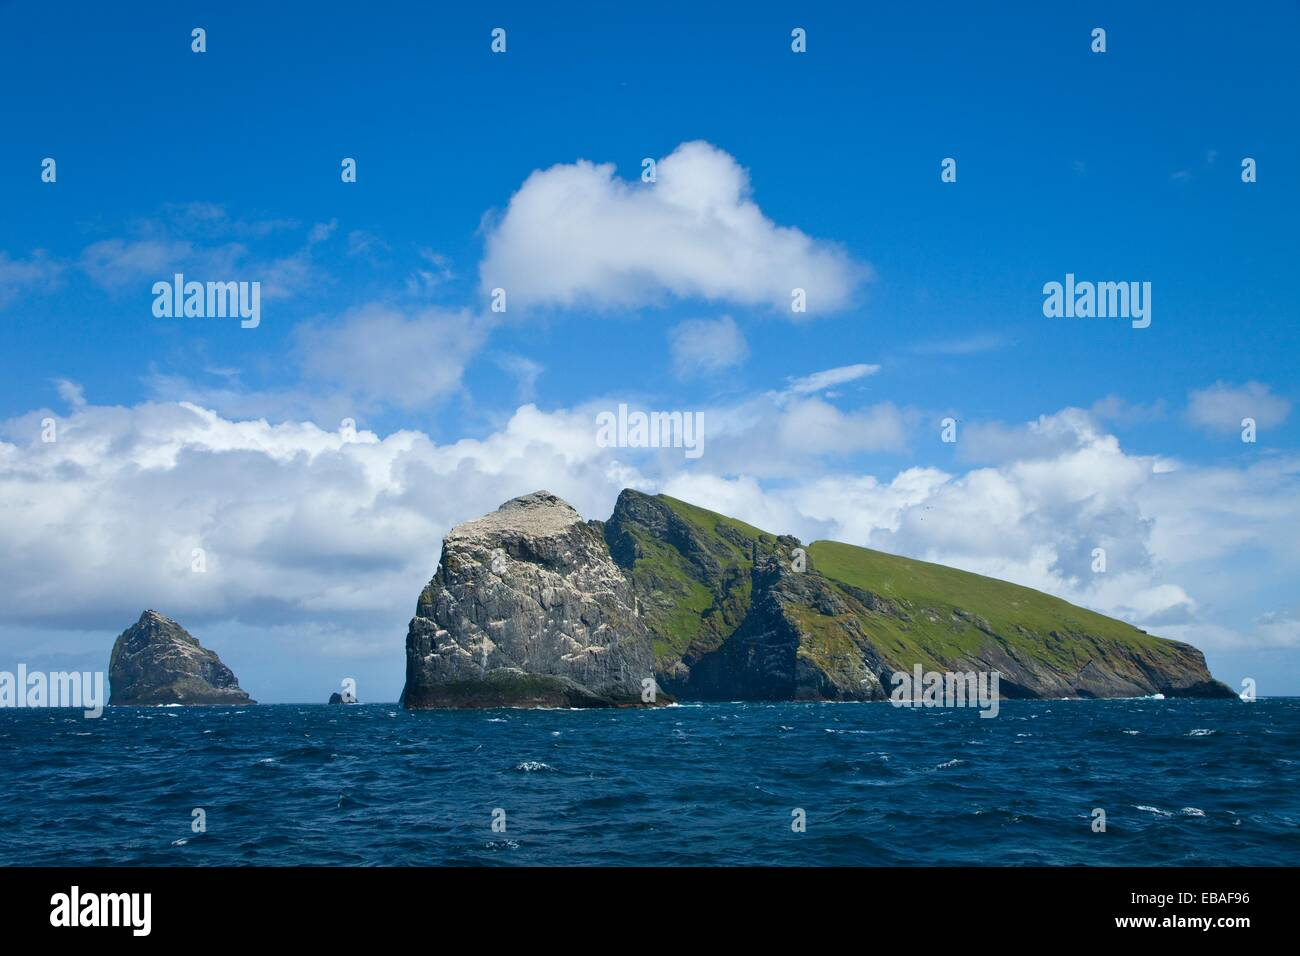 Stac Lee, Stac an Armin and Boreray Islands. Gannet colony. St. Kilda Archipelago. Outer Hebrides. Scotland, UK. - Stock Image